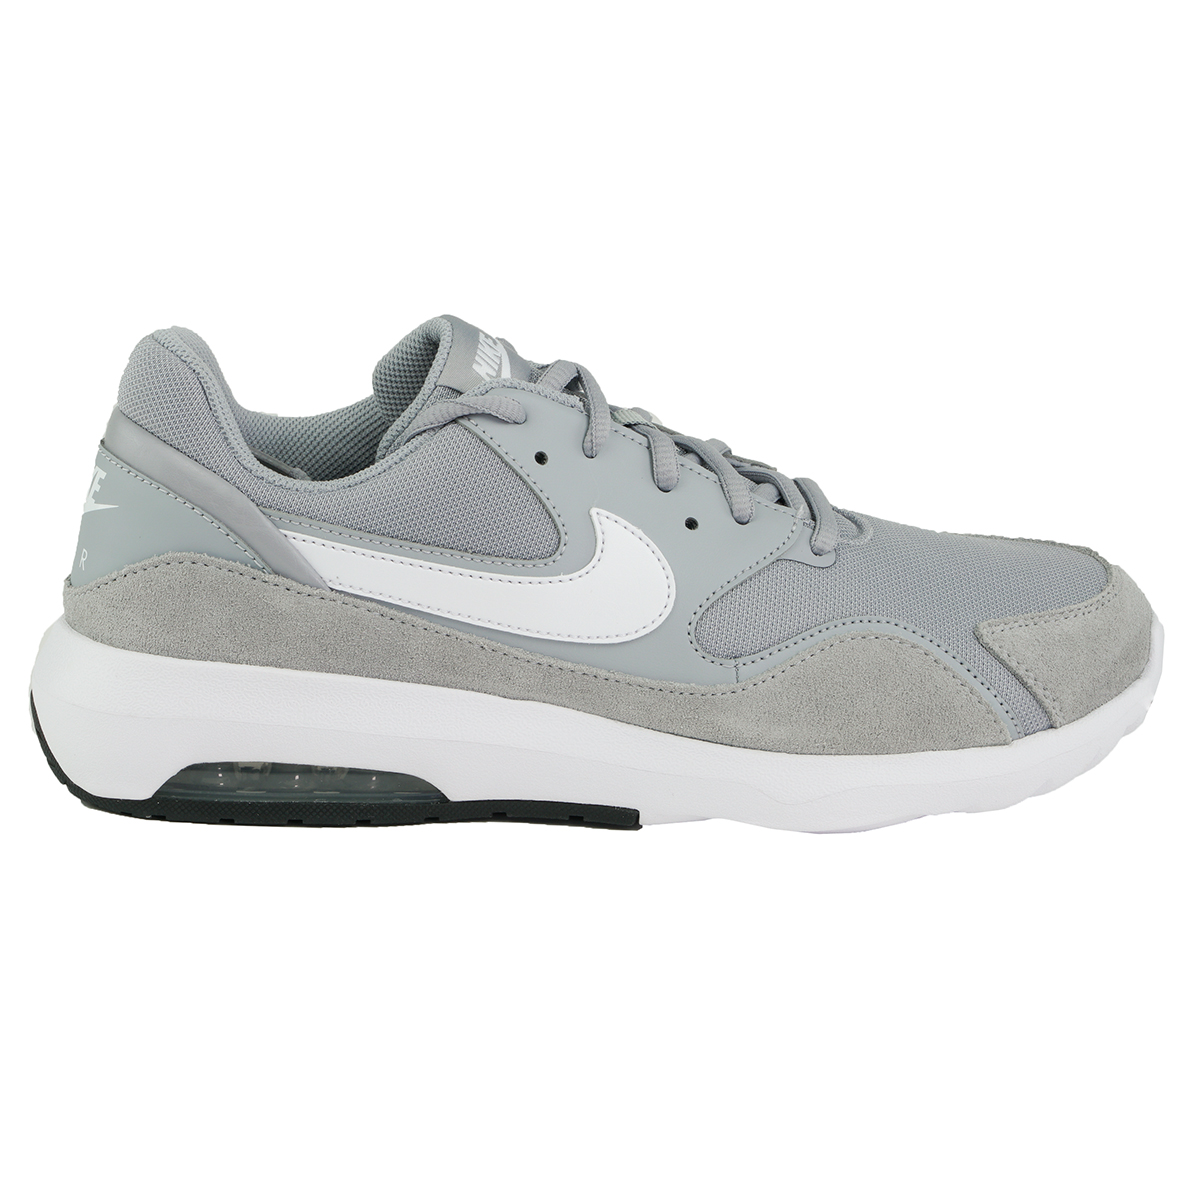 30e0f1a80e5 Nike Men s Air Max Nostalgic Shoes